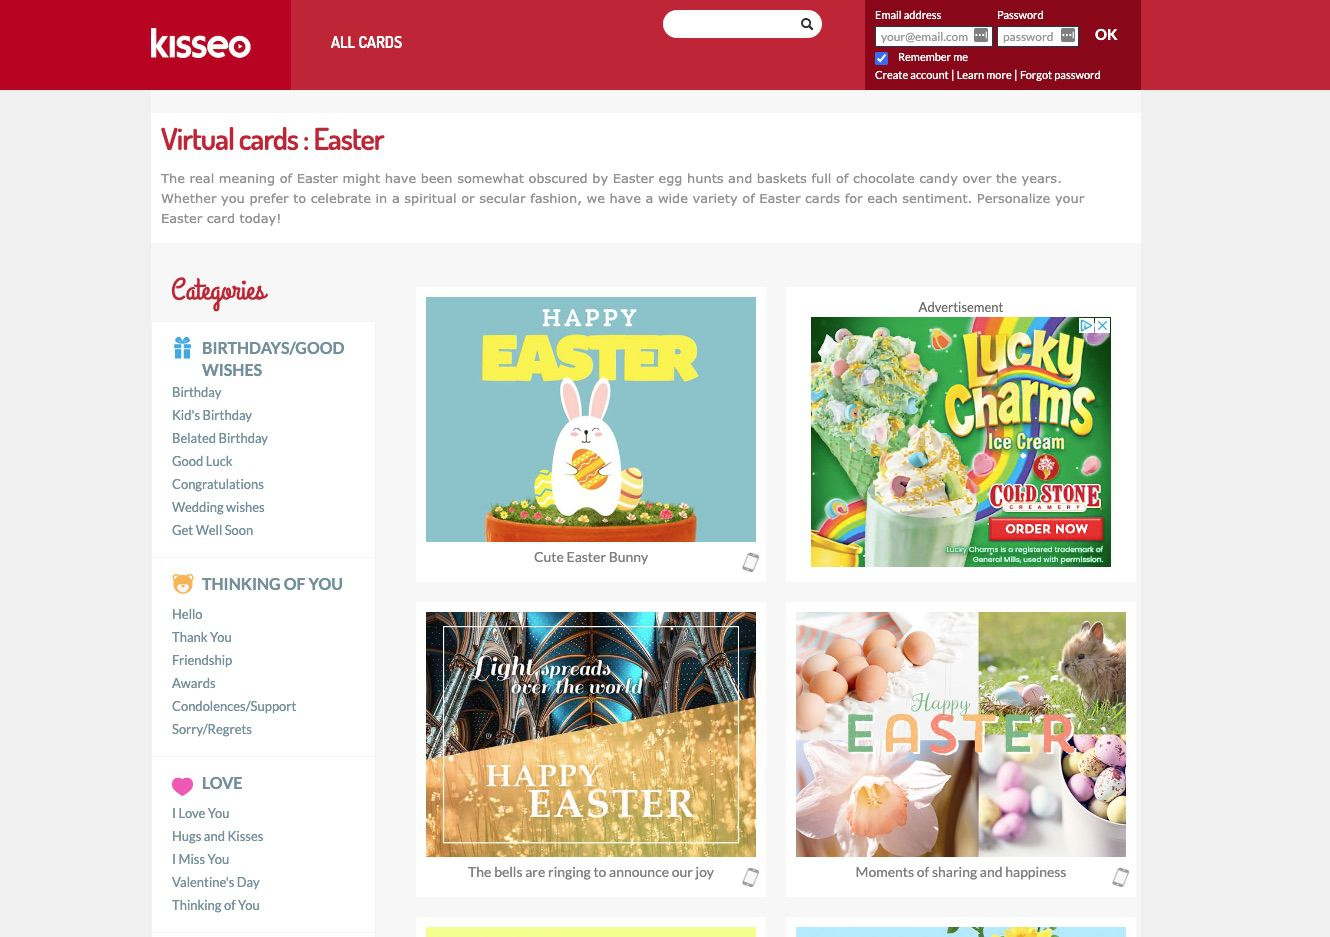 Kisseo free Easter greeting e-cards